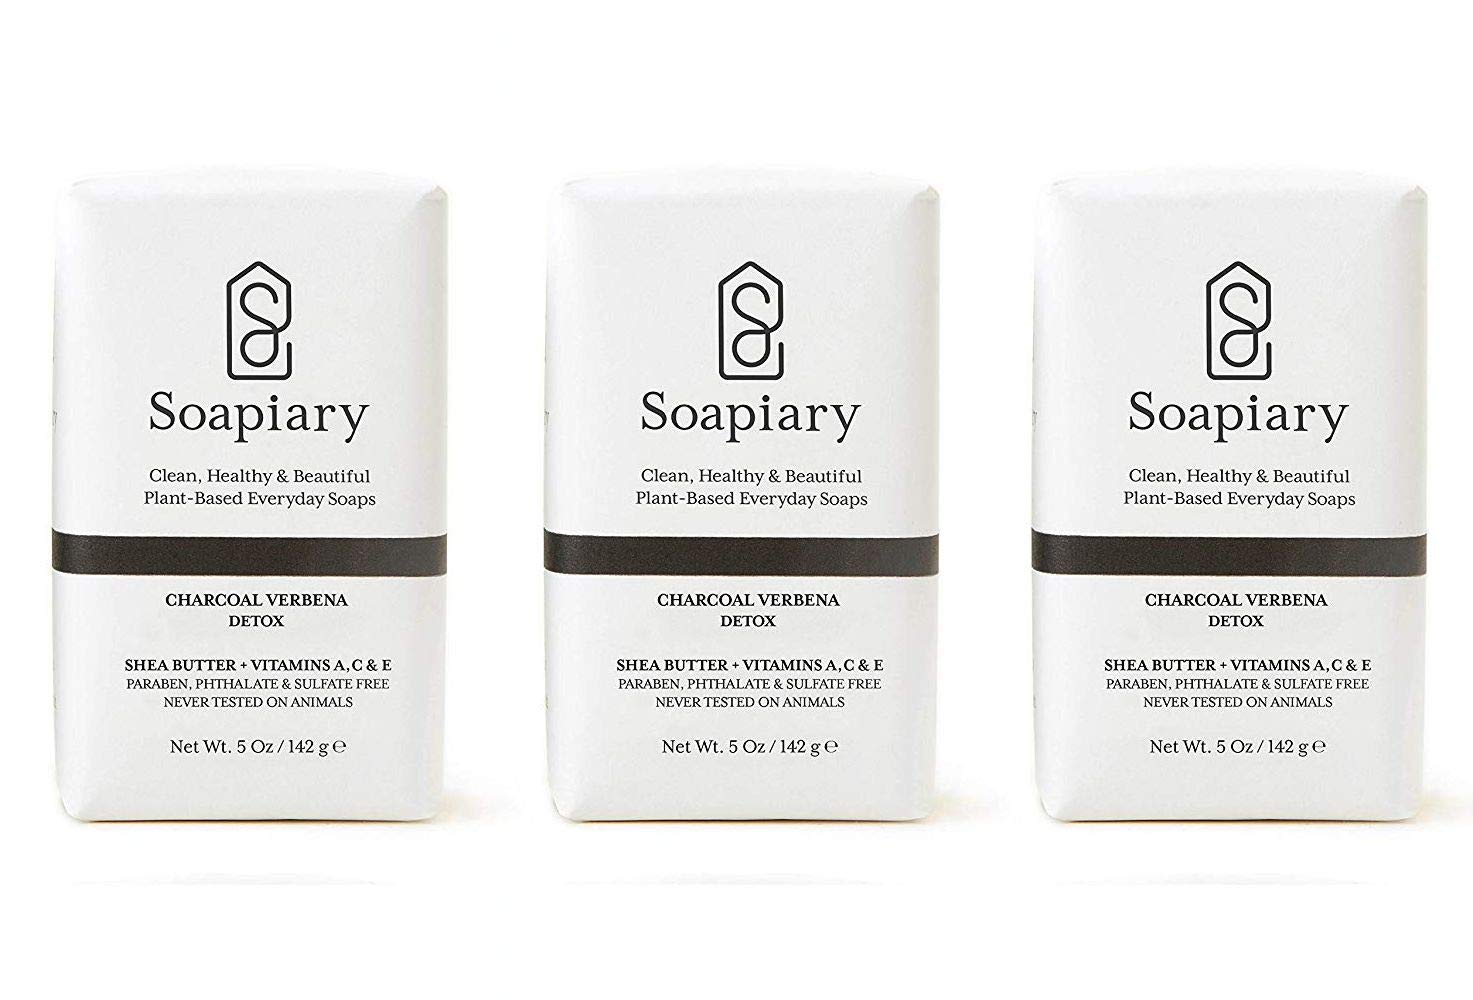 Soapiary Luxury Triple Milled 5 oz Soap Bar - Natural Vegan Plant-Based Hypoallergenic Bath Soaps – Charcoal Verbena, 3 Pack